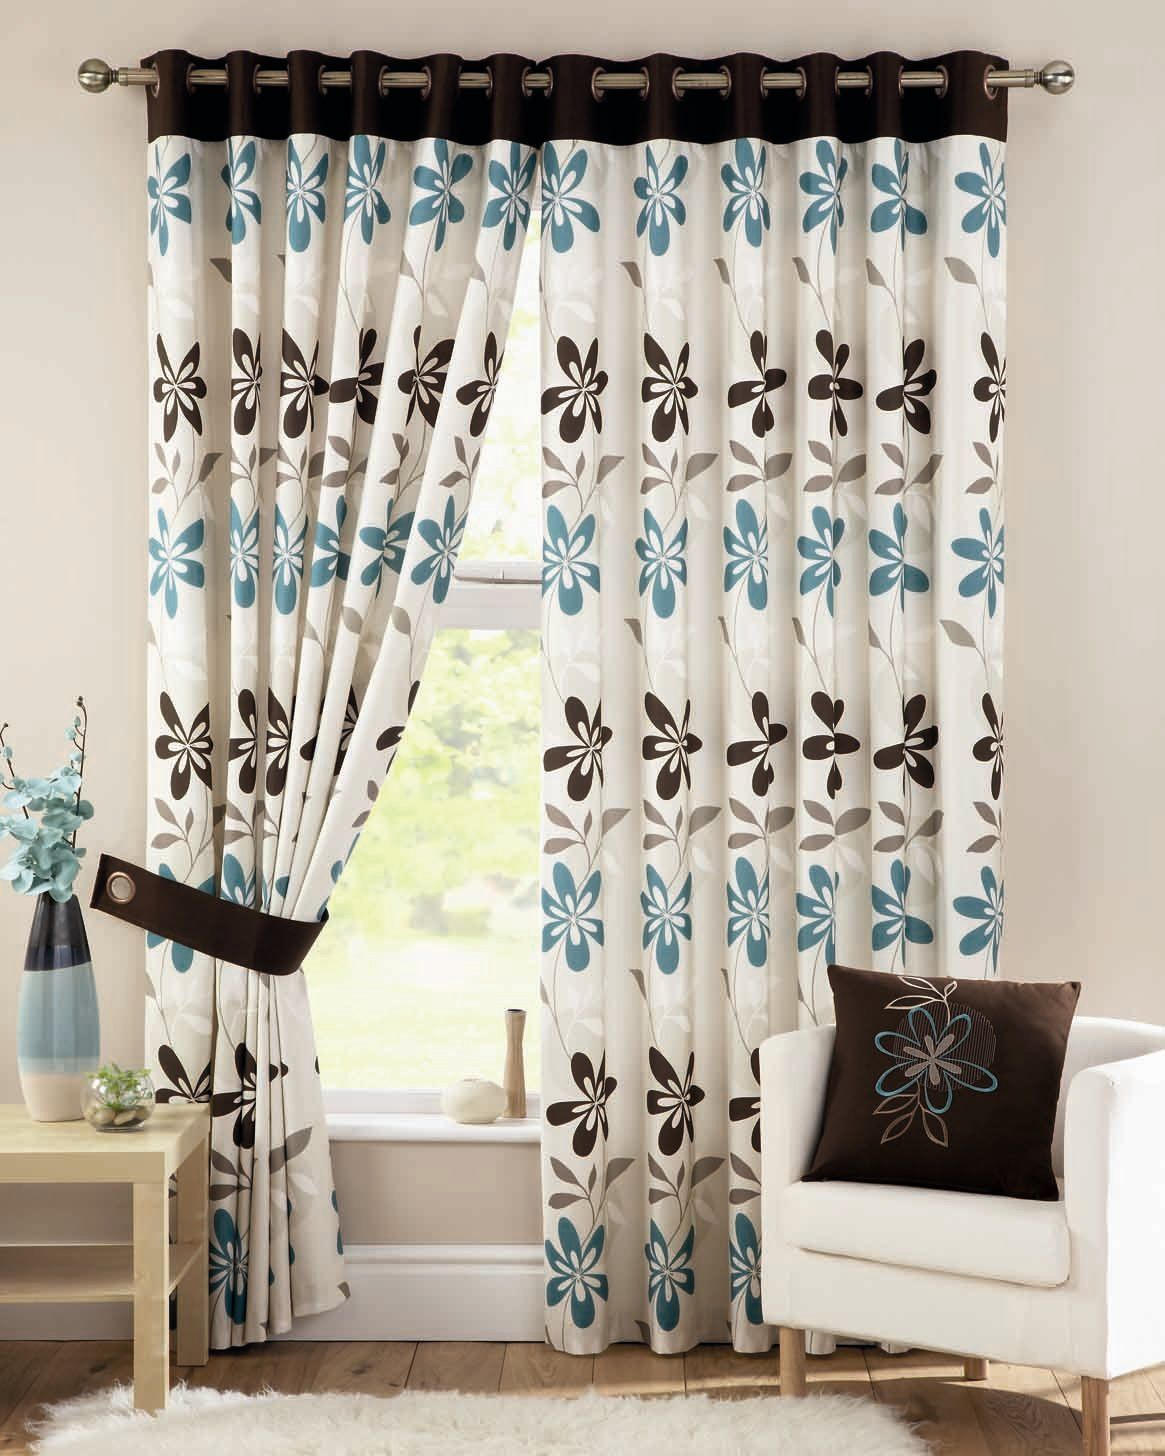 Ariel Teal Readymade Lined Eyelet Curtains